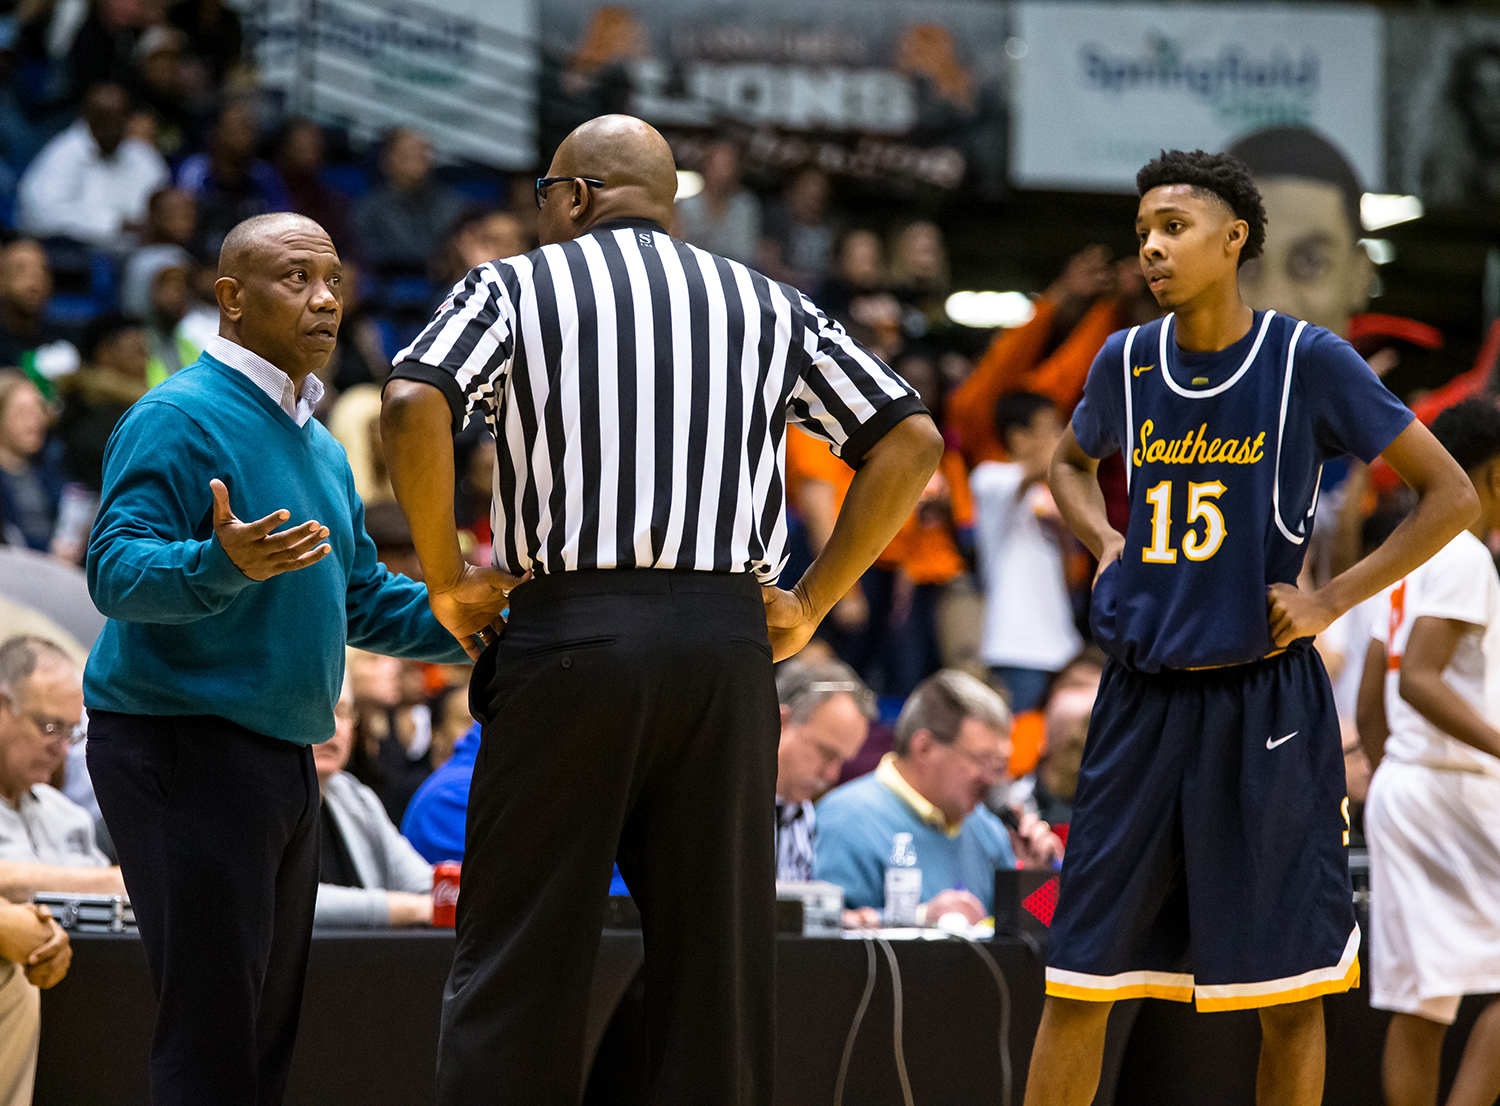 Southeast boys basketball head coach Lawrence Thomas talks with the referee after Southeast's James Dent (15) is called for his second technical and is ejected from the game as the Spartans take on Lanphier in the fourth quarter on opening night of the Boys City Tournament at the Bank of Springfield Center, Wednesday, Jan. 16, 2019, in Springfield, Ill. [Justin L. Fowler/The State Journal-Register]